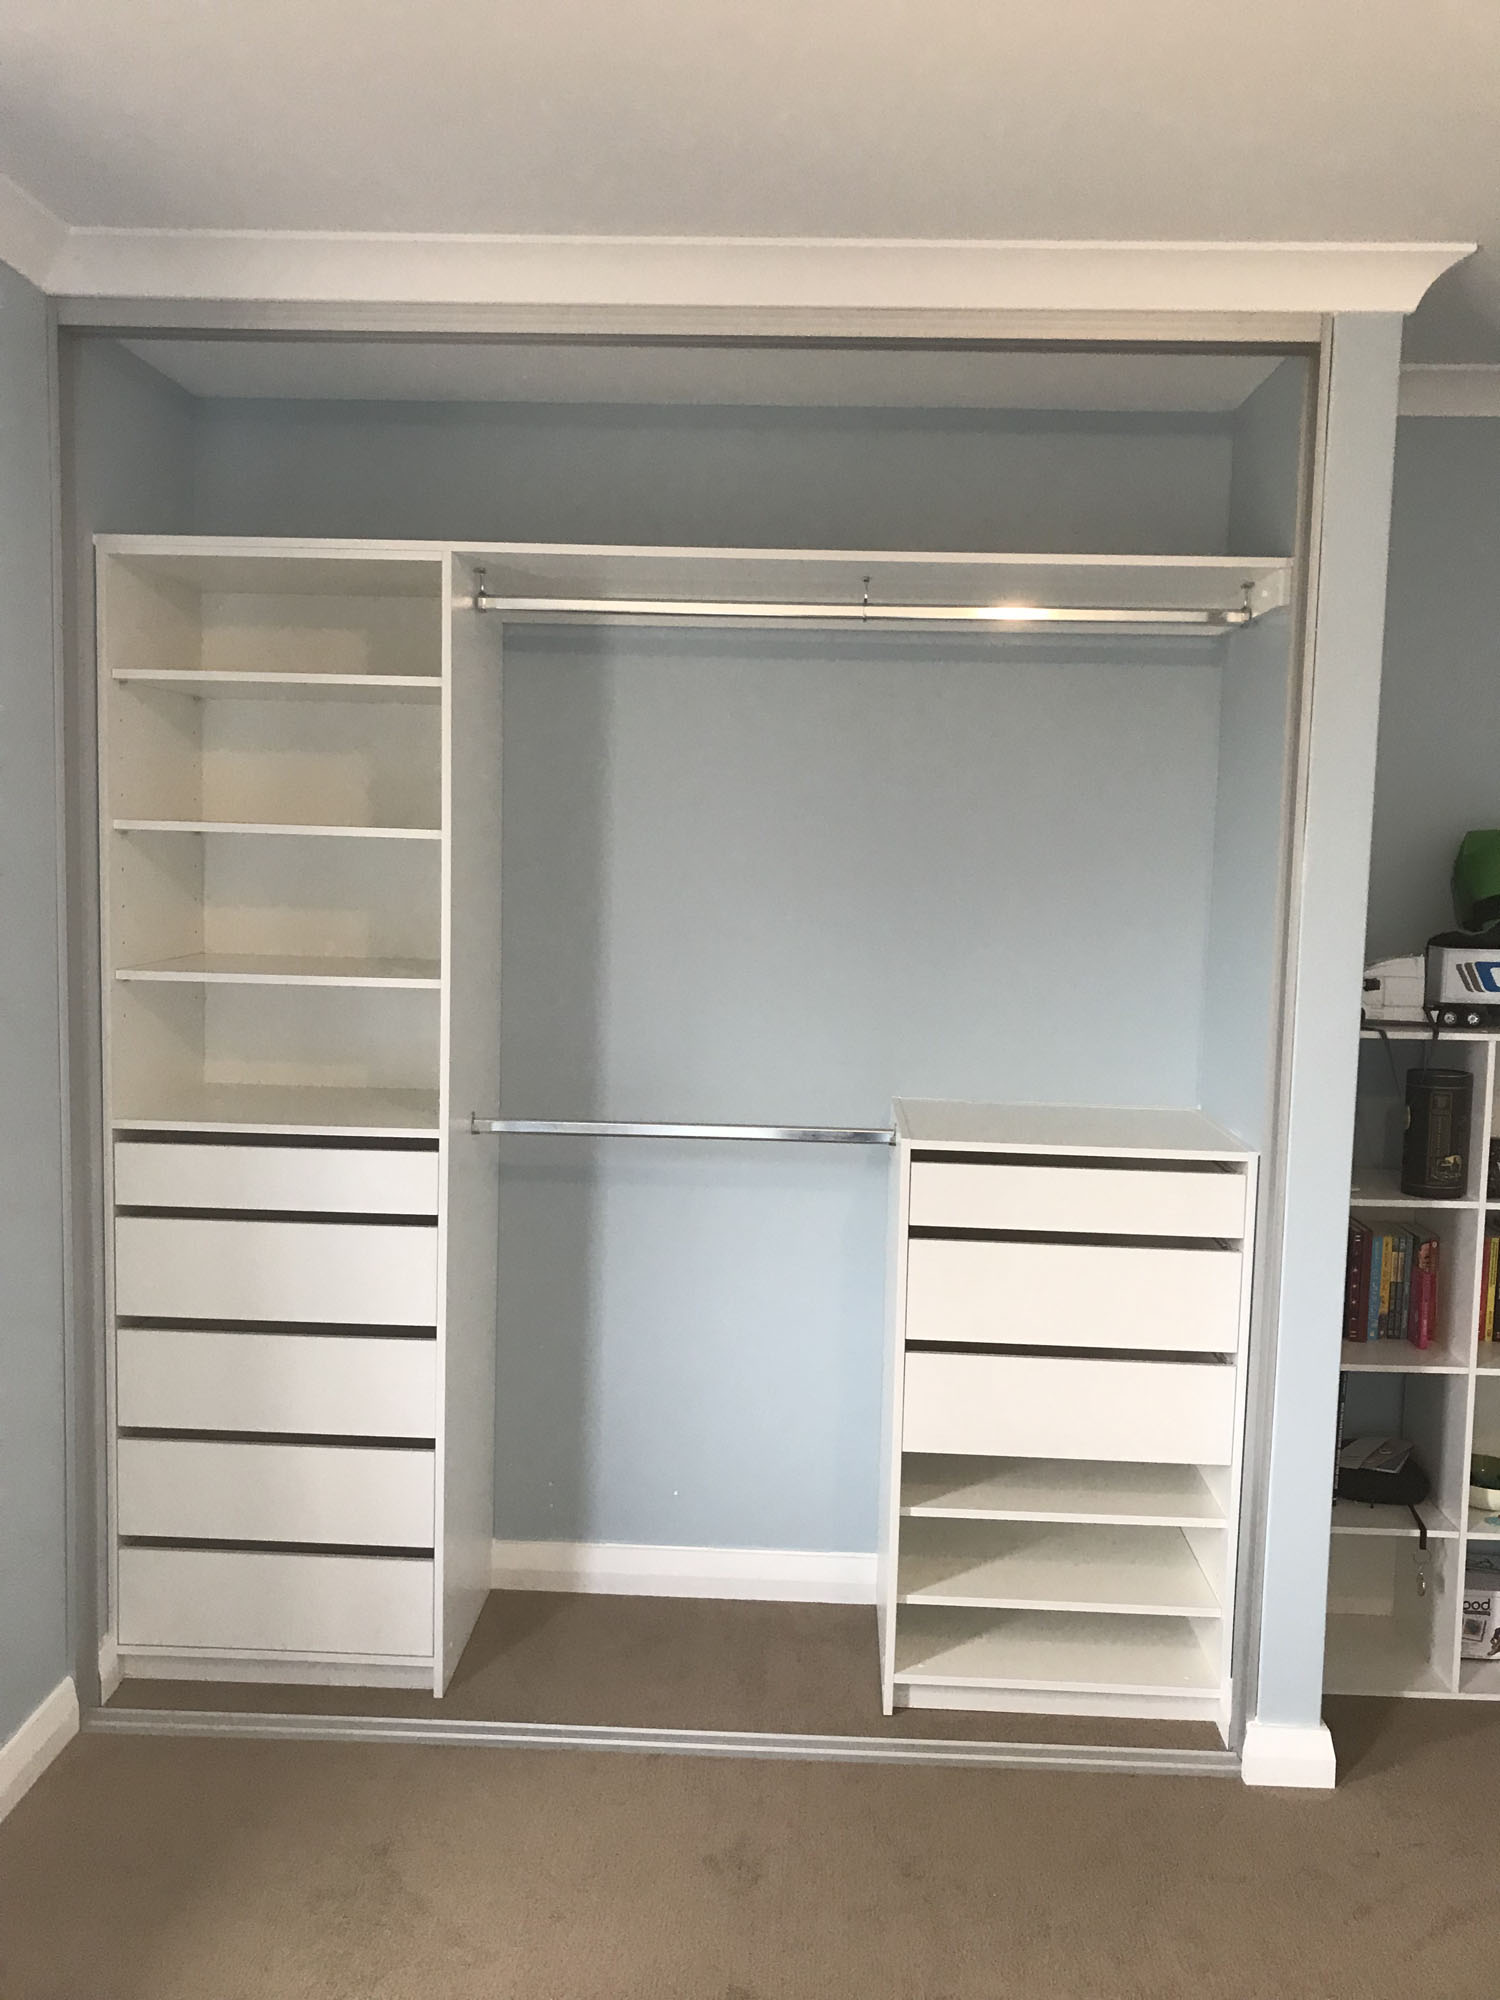 Built-in Wardrobe Kids Room